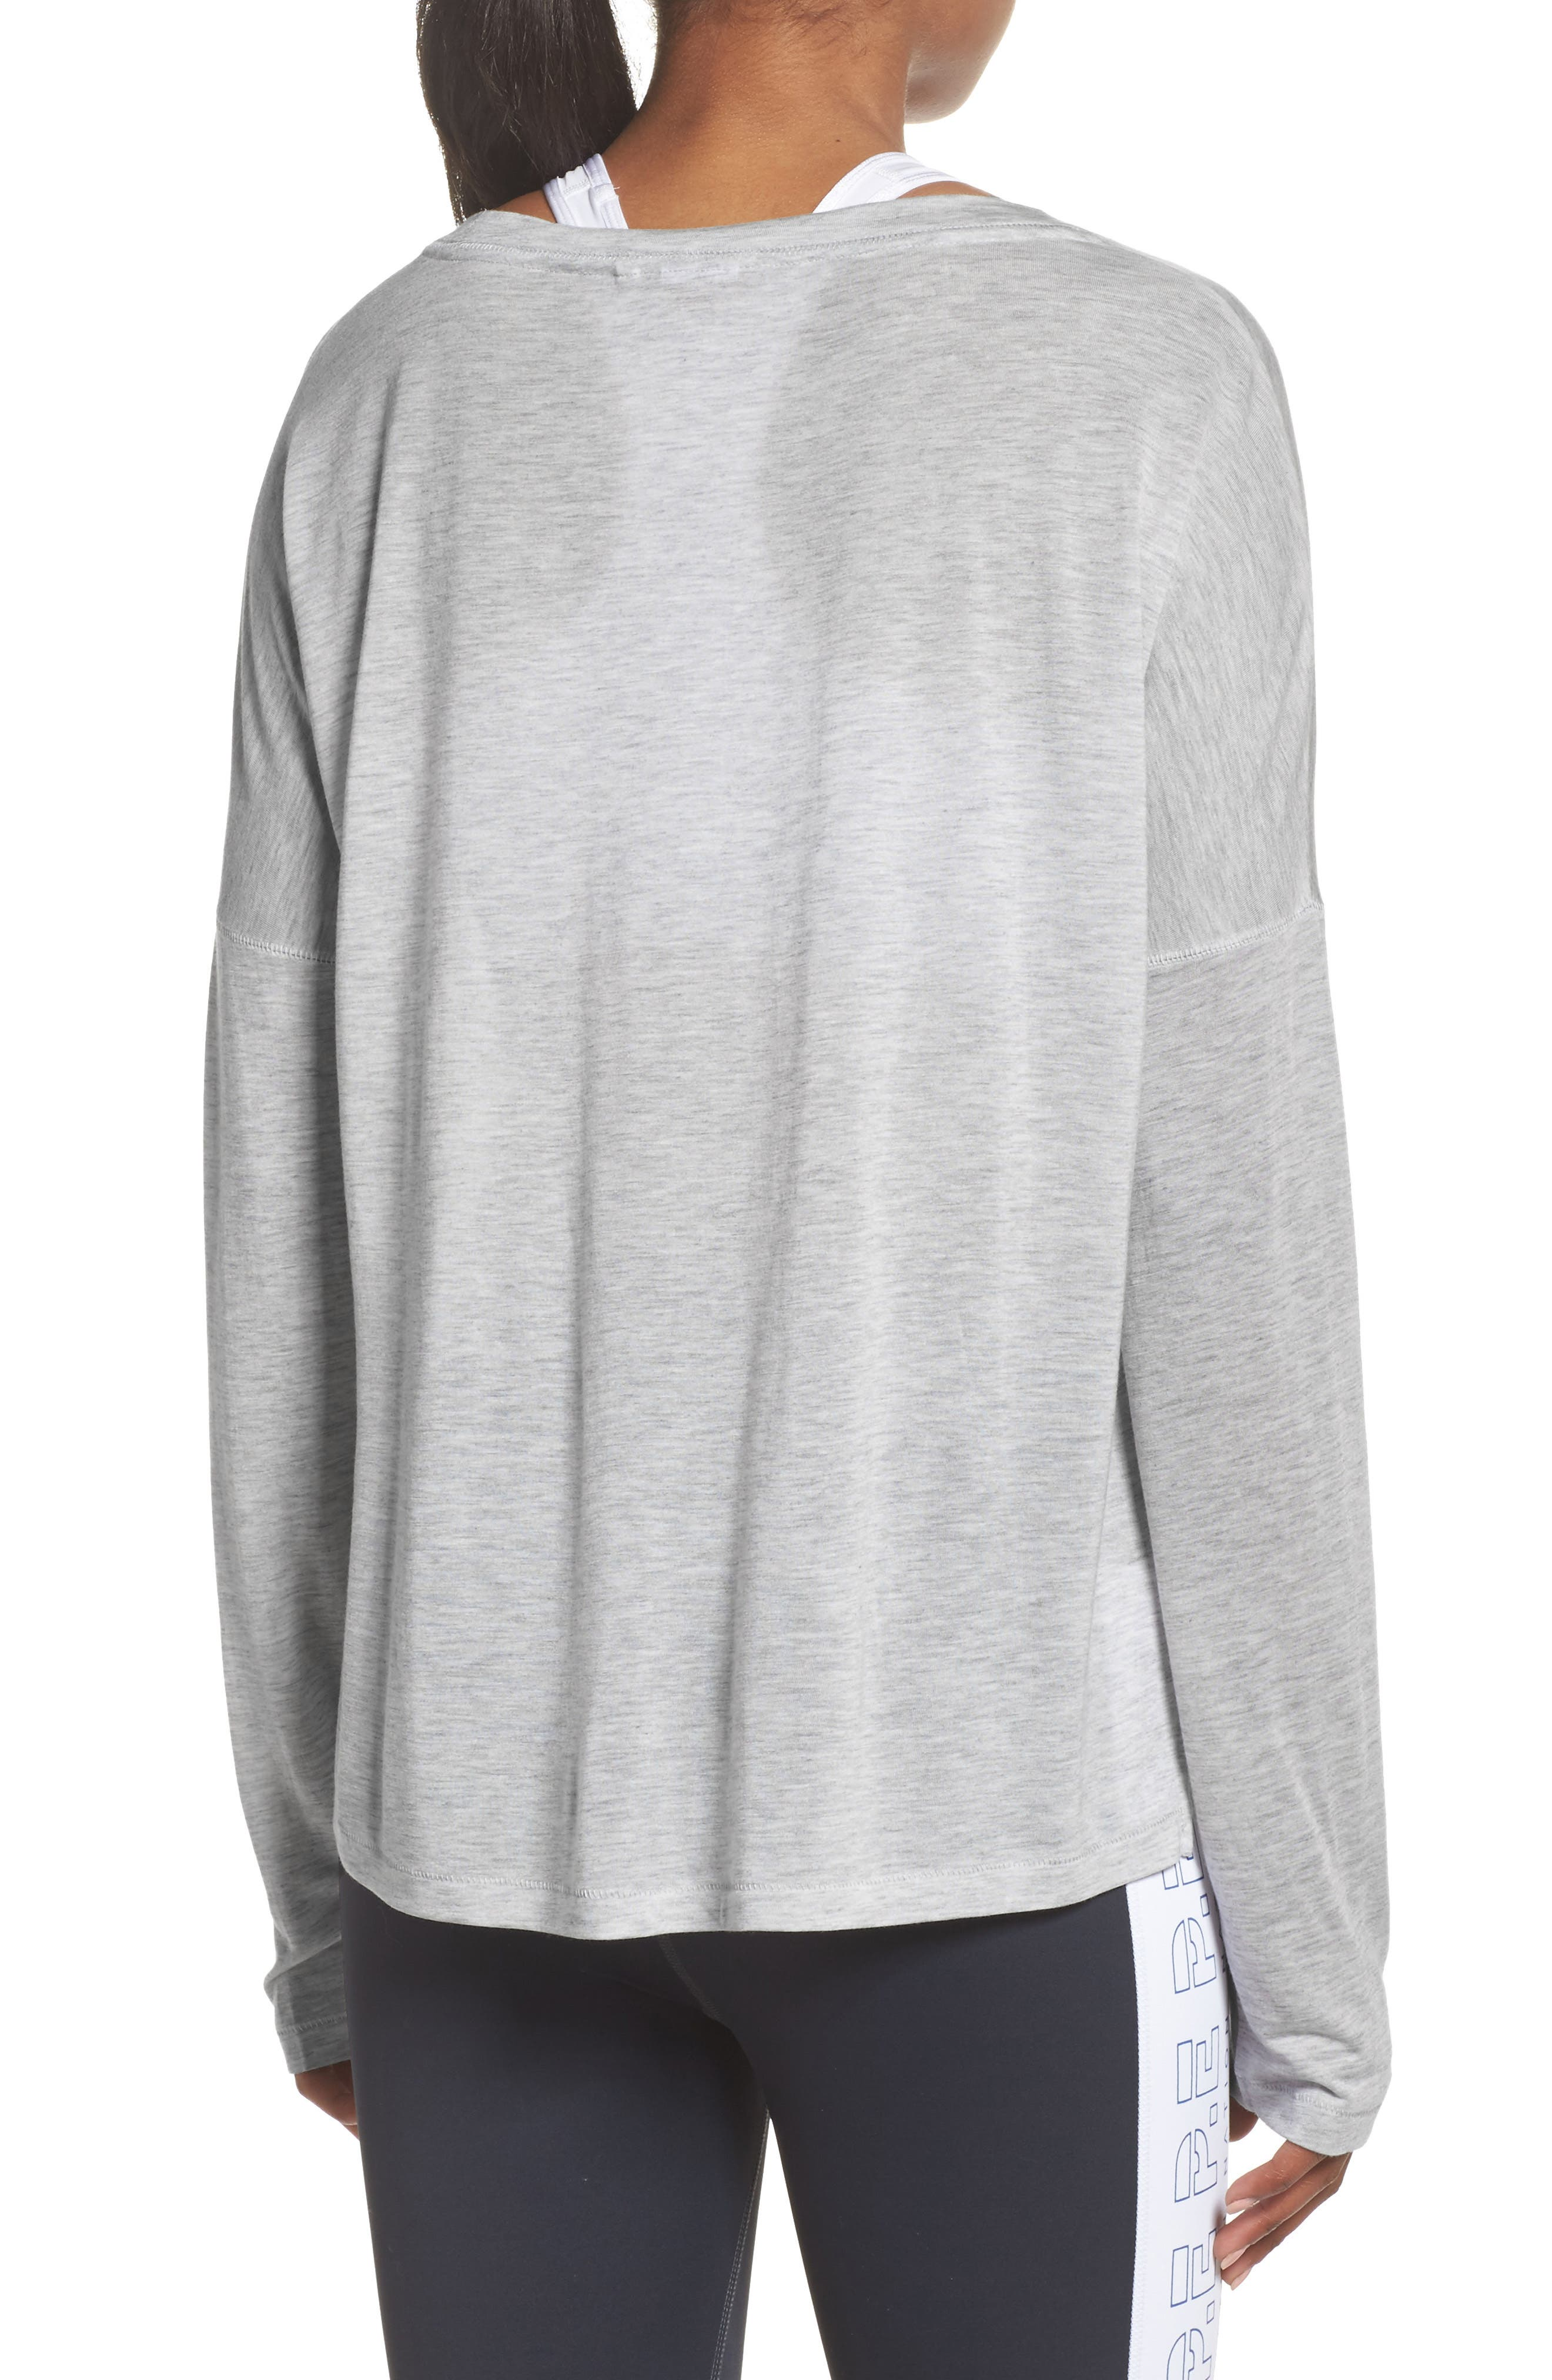 Cool Running Top,                             Alternate thumbnail 2, color,                             Grey Marle